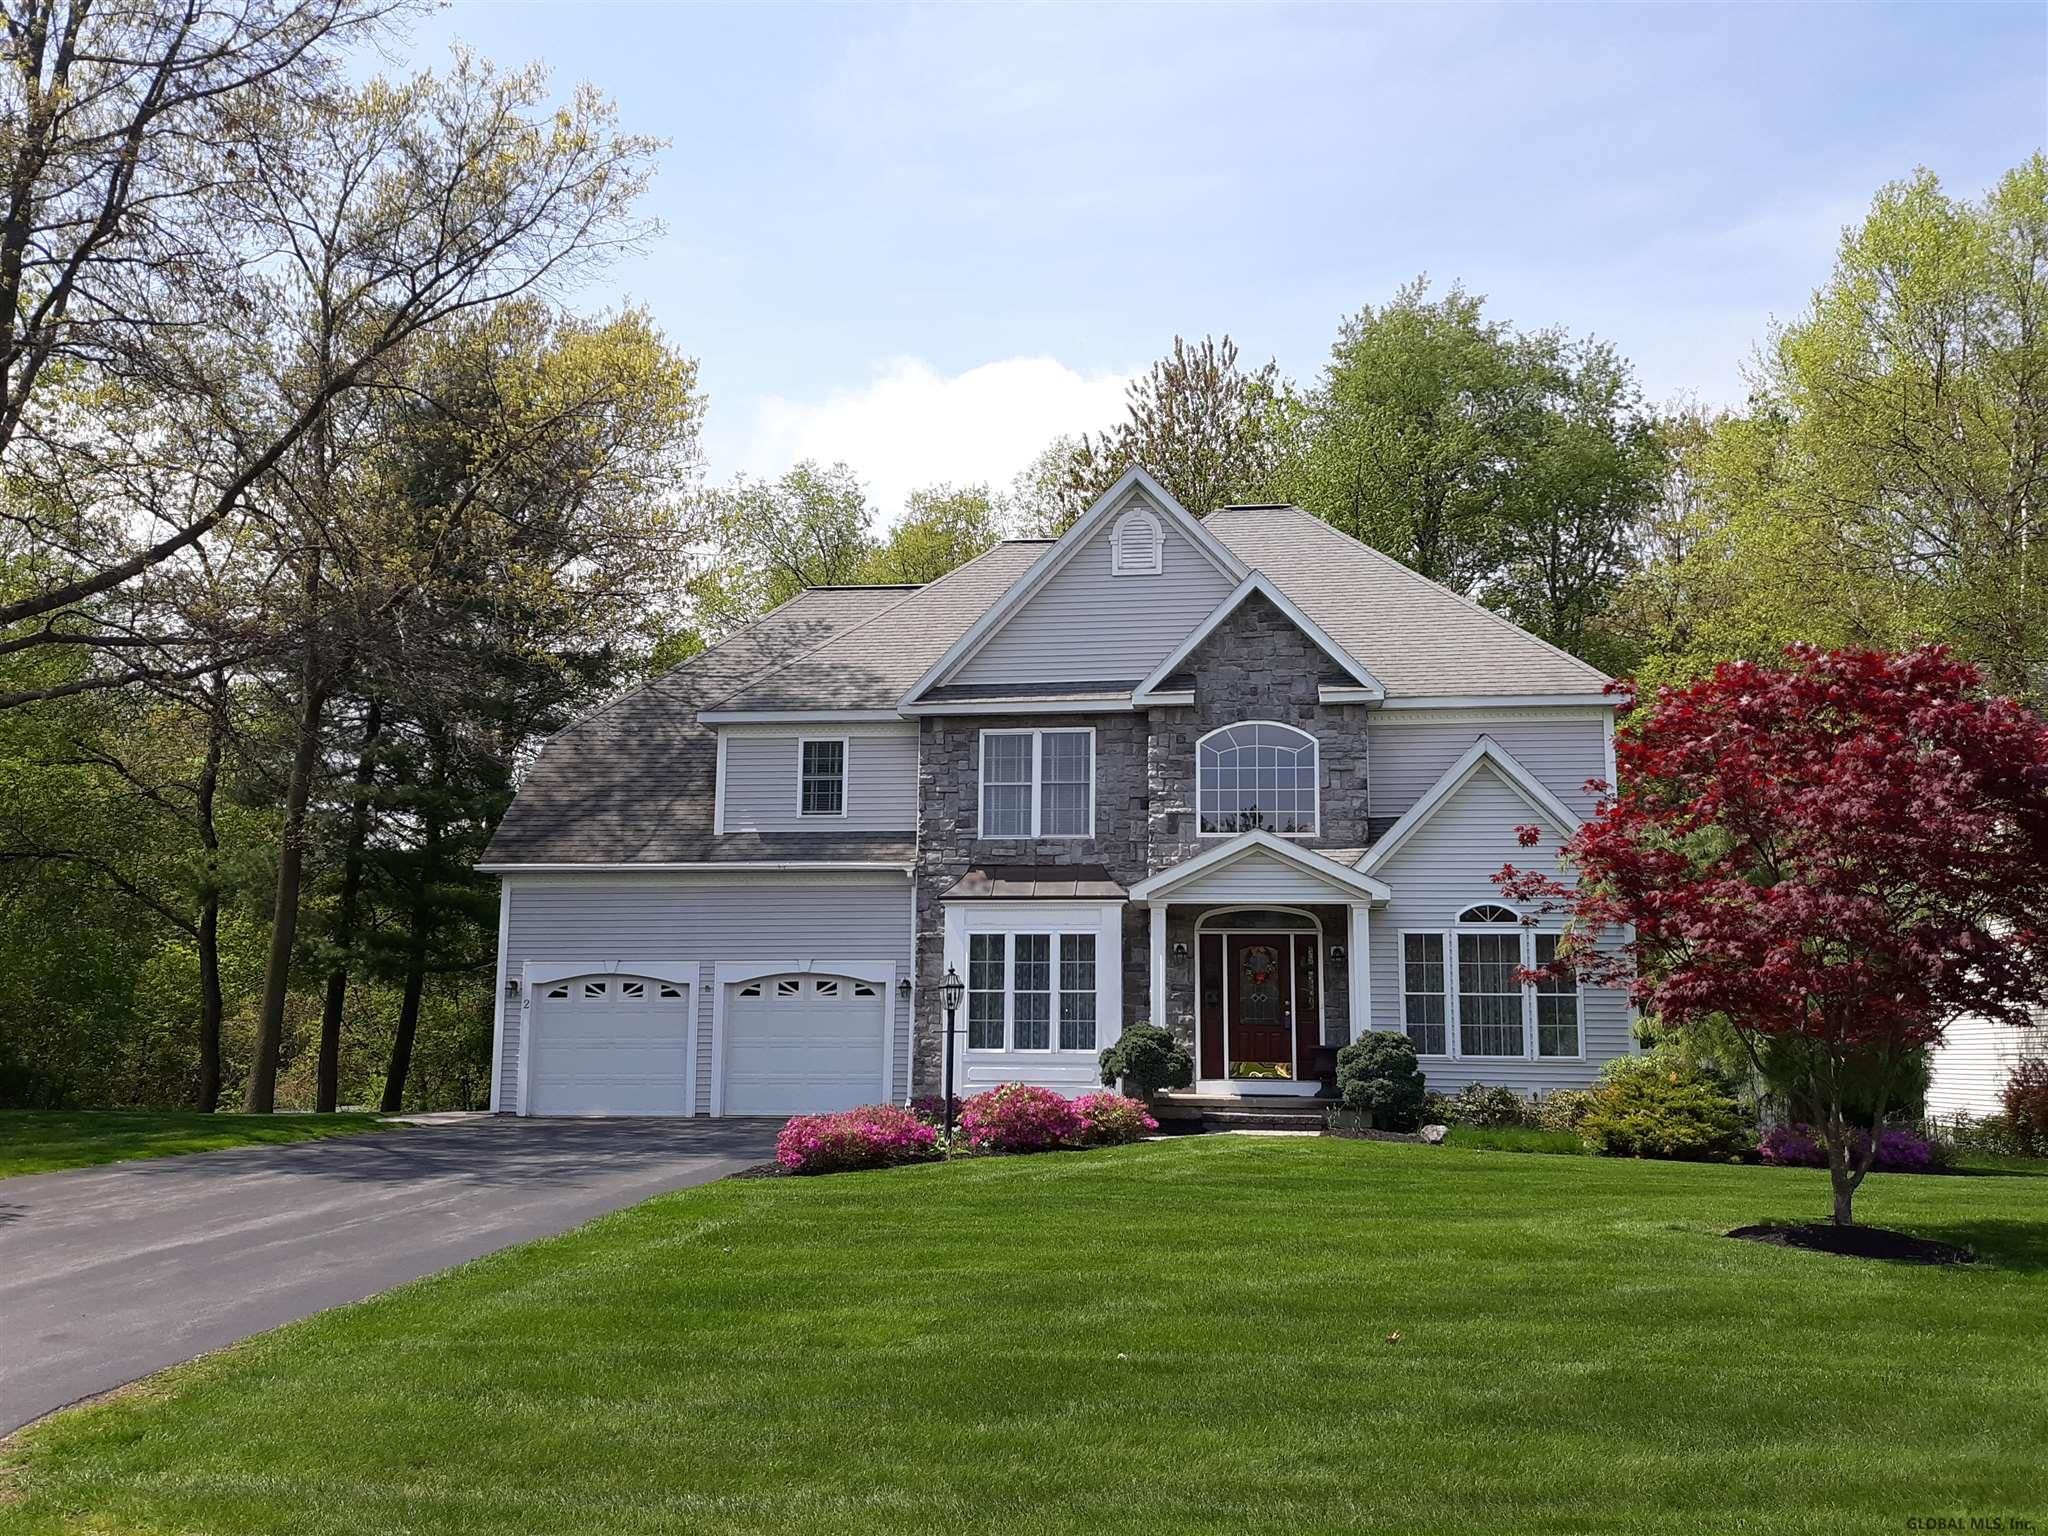 2 Cathywood Ct In Clifton Park Ny Listed For 425 000 00